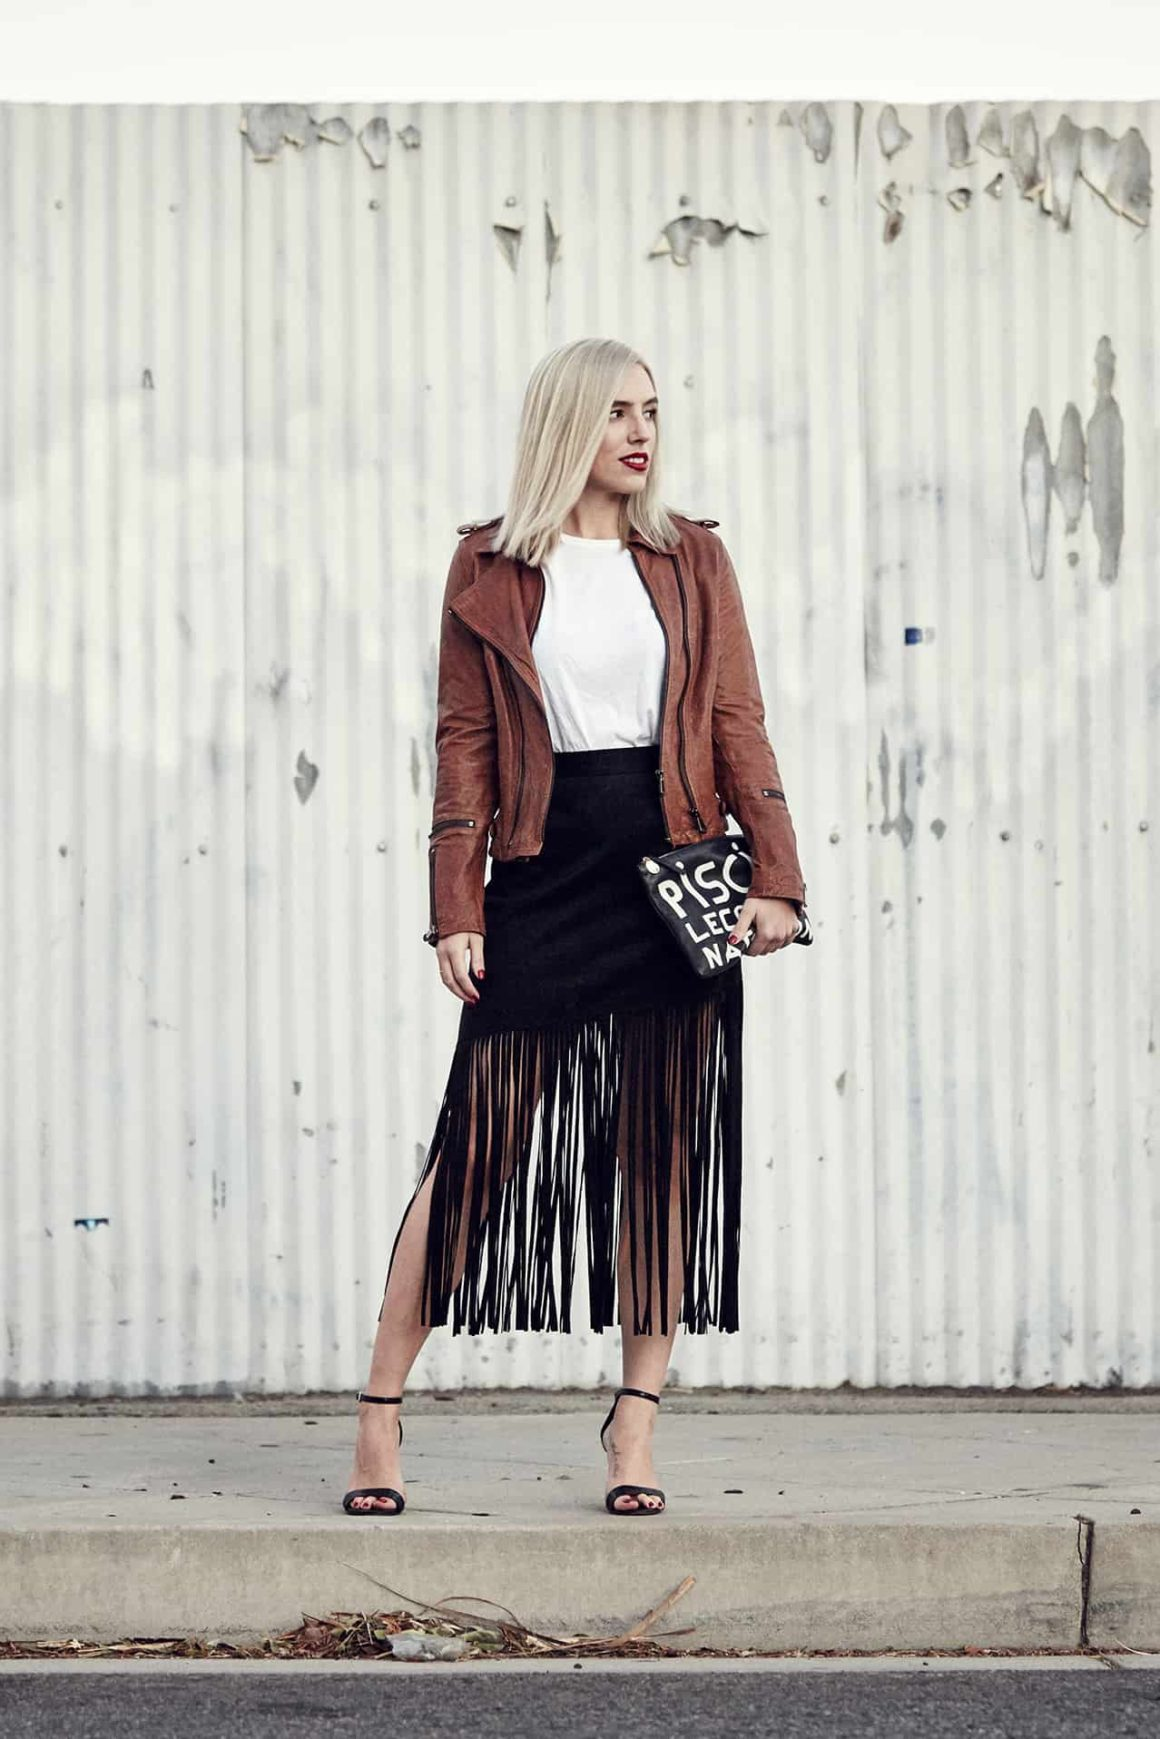 Latest Love: The Fringe Skirt.